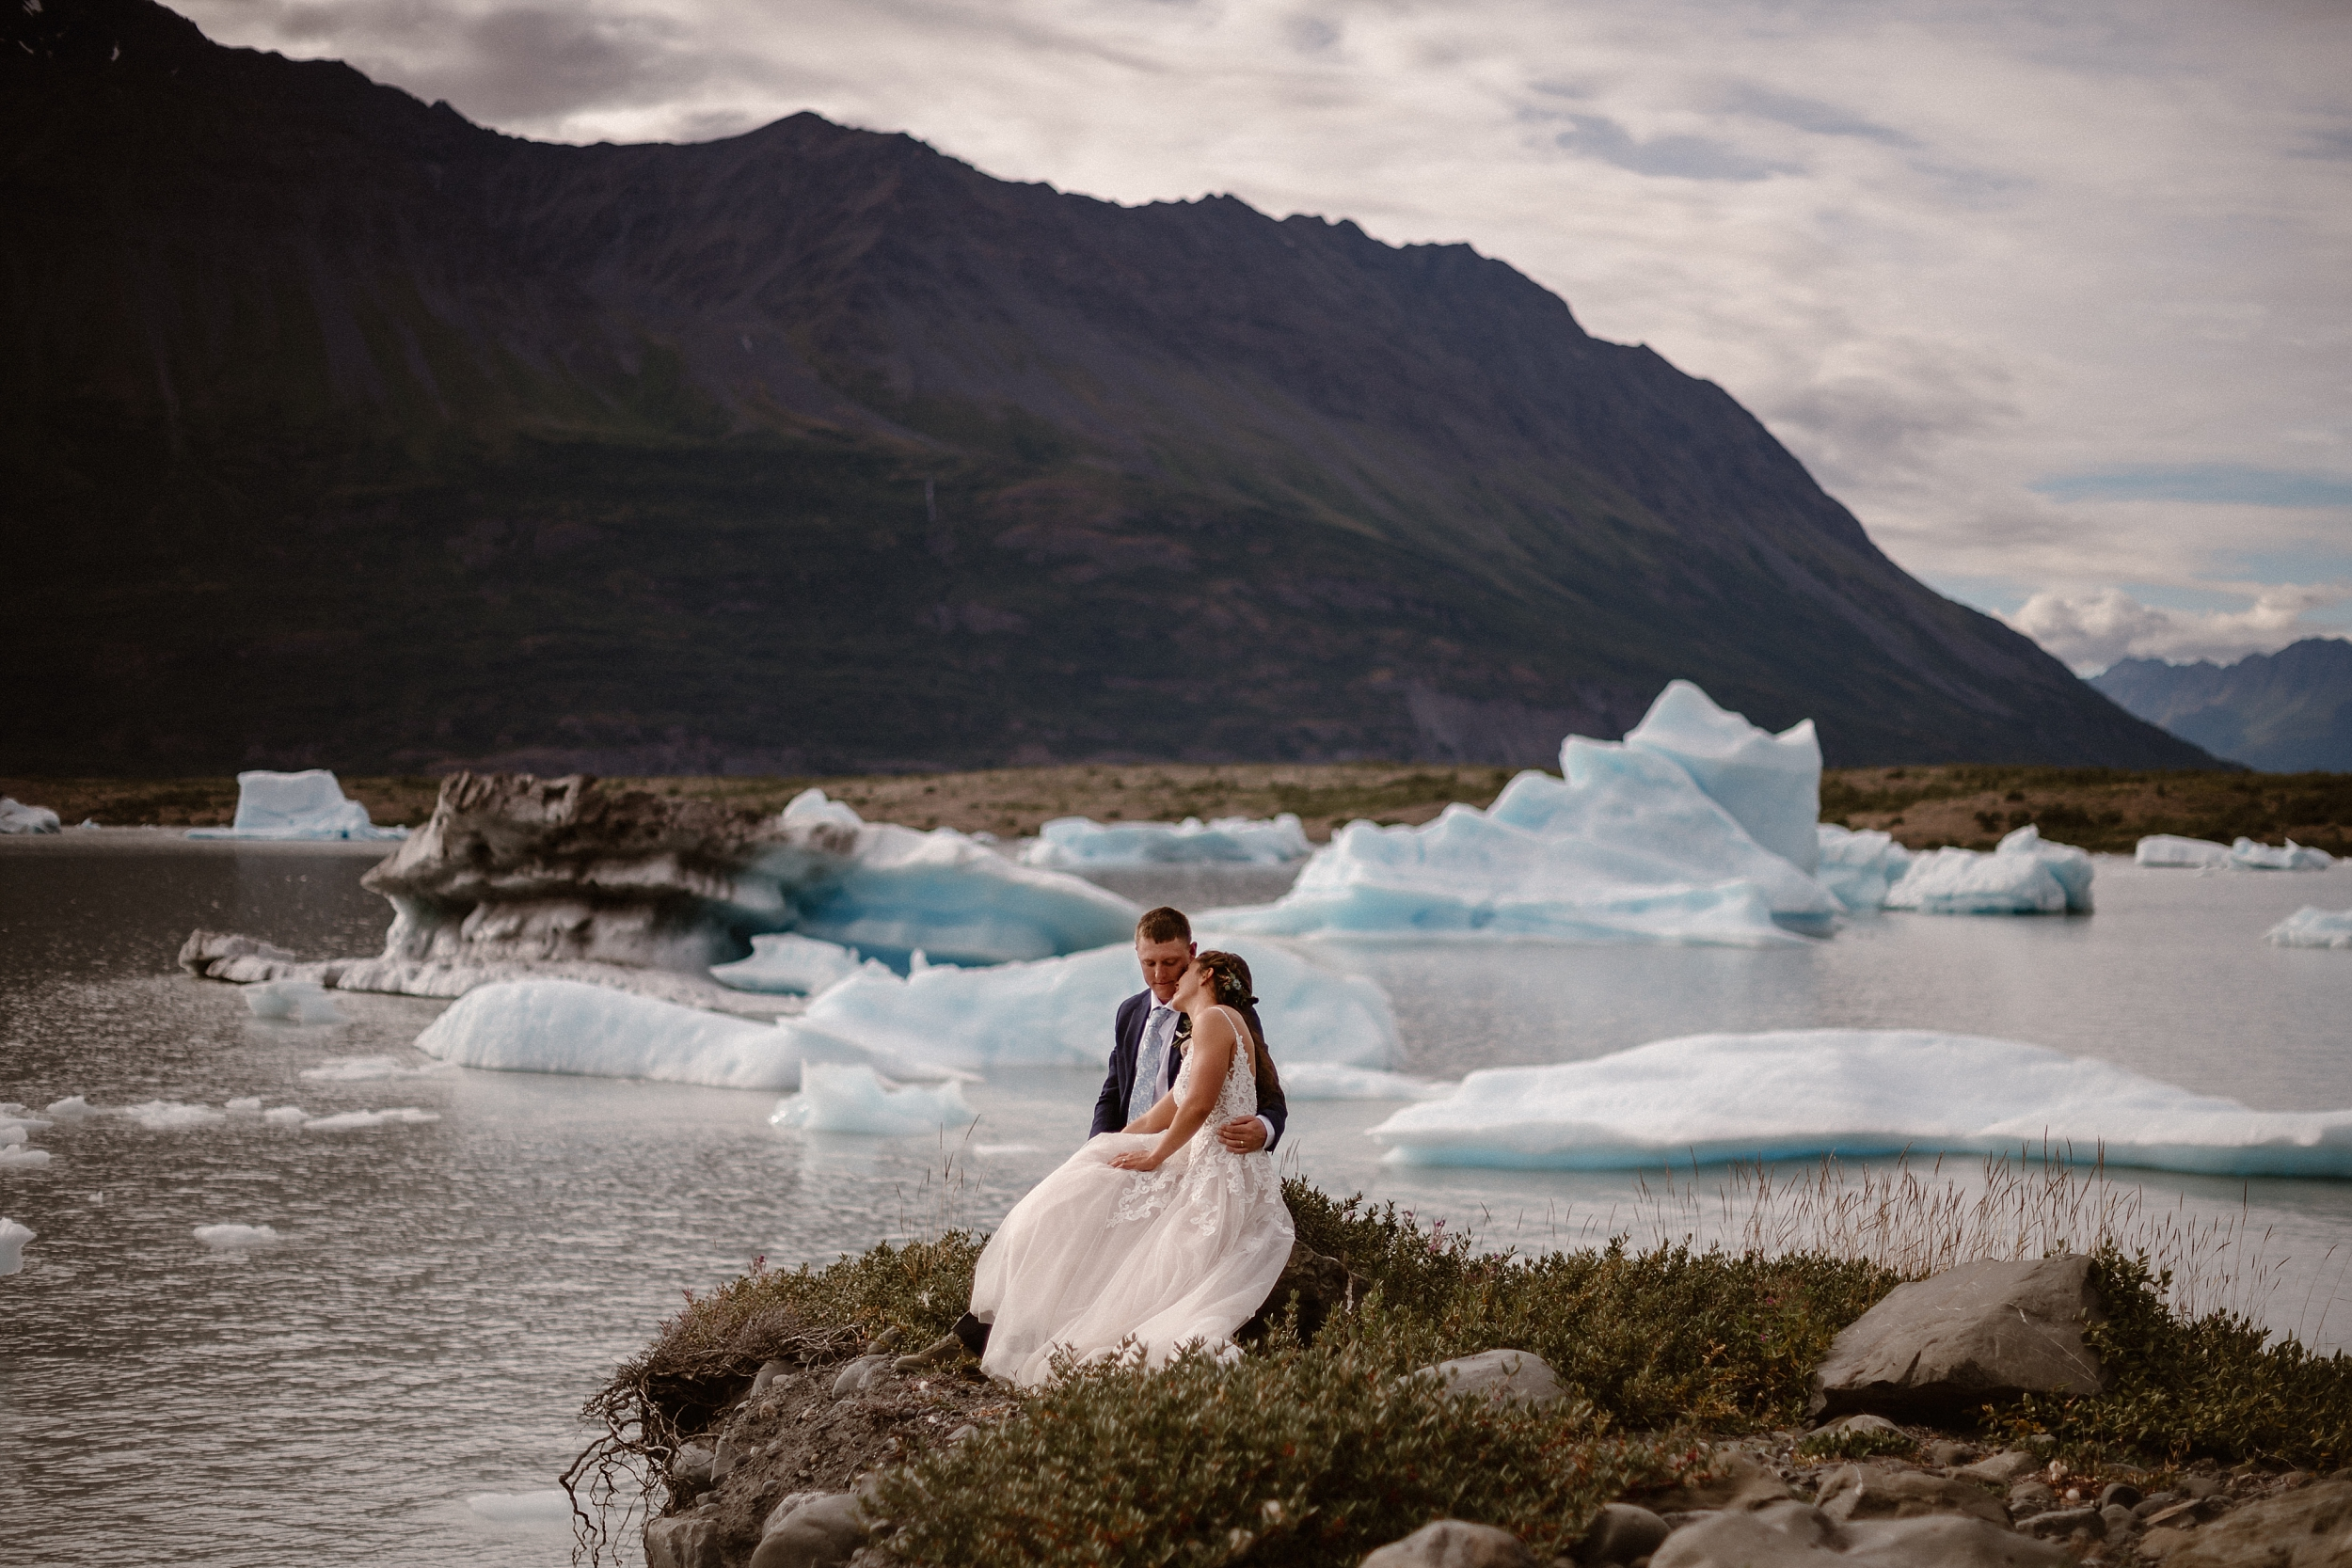 Sitting side-by-side on a rock next to a glacial lake, Jordyn leans her head down onto Connor's shoulder. In the background of this elopement photo captured by Adventure Instead, Alaska wedding photographers, are green and granite mountains and icy peaks.